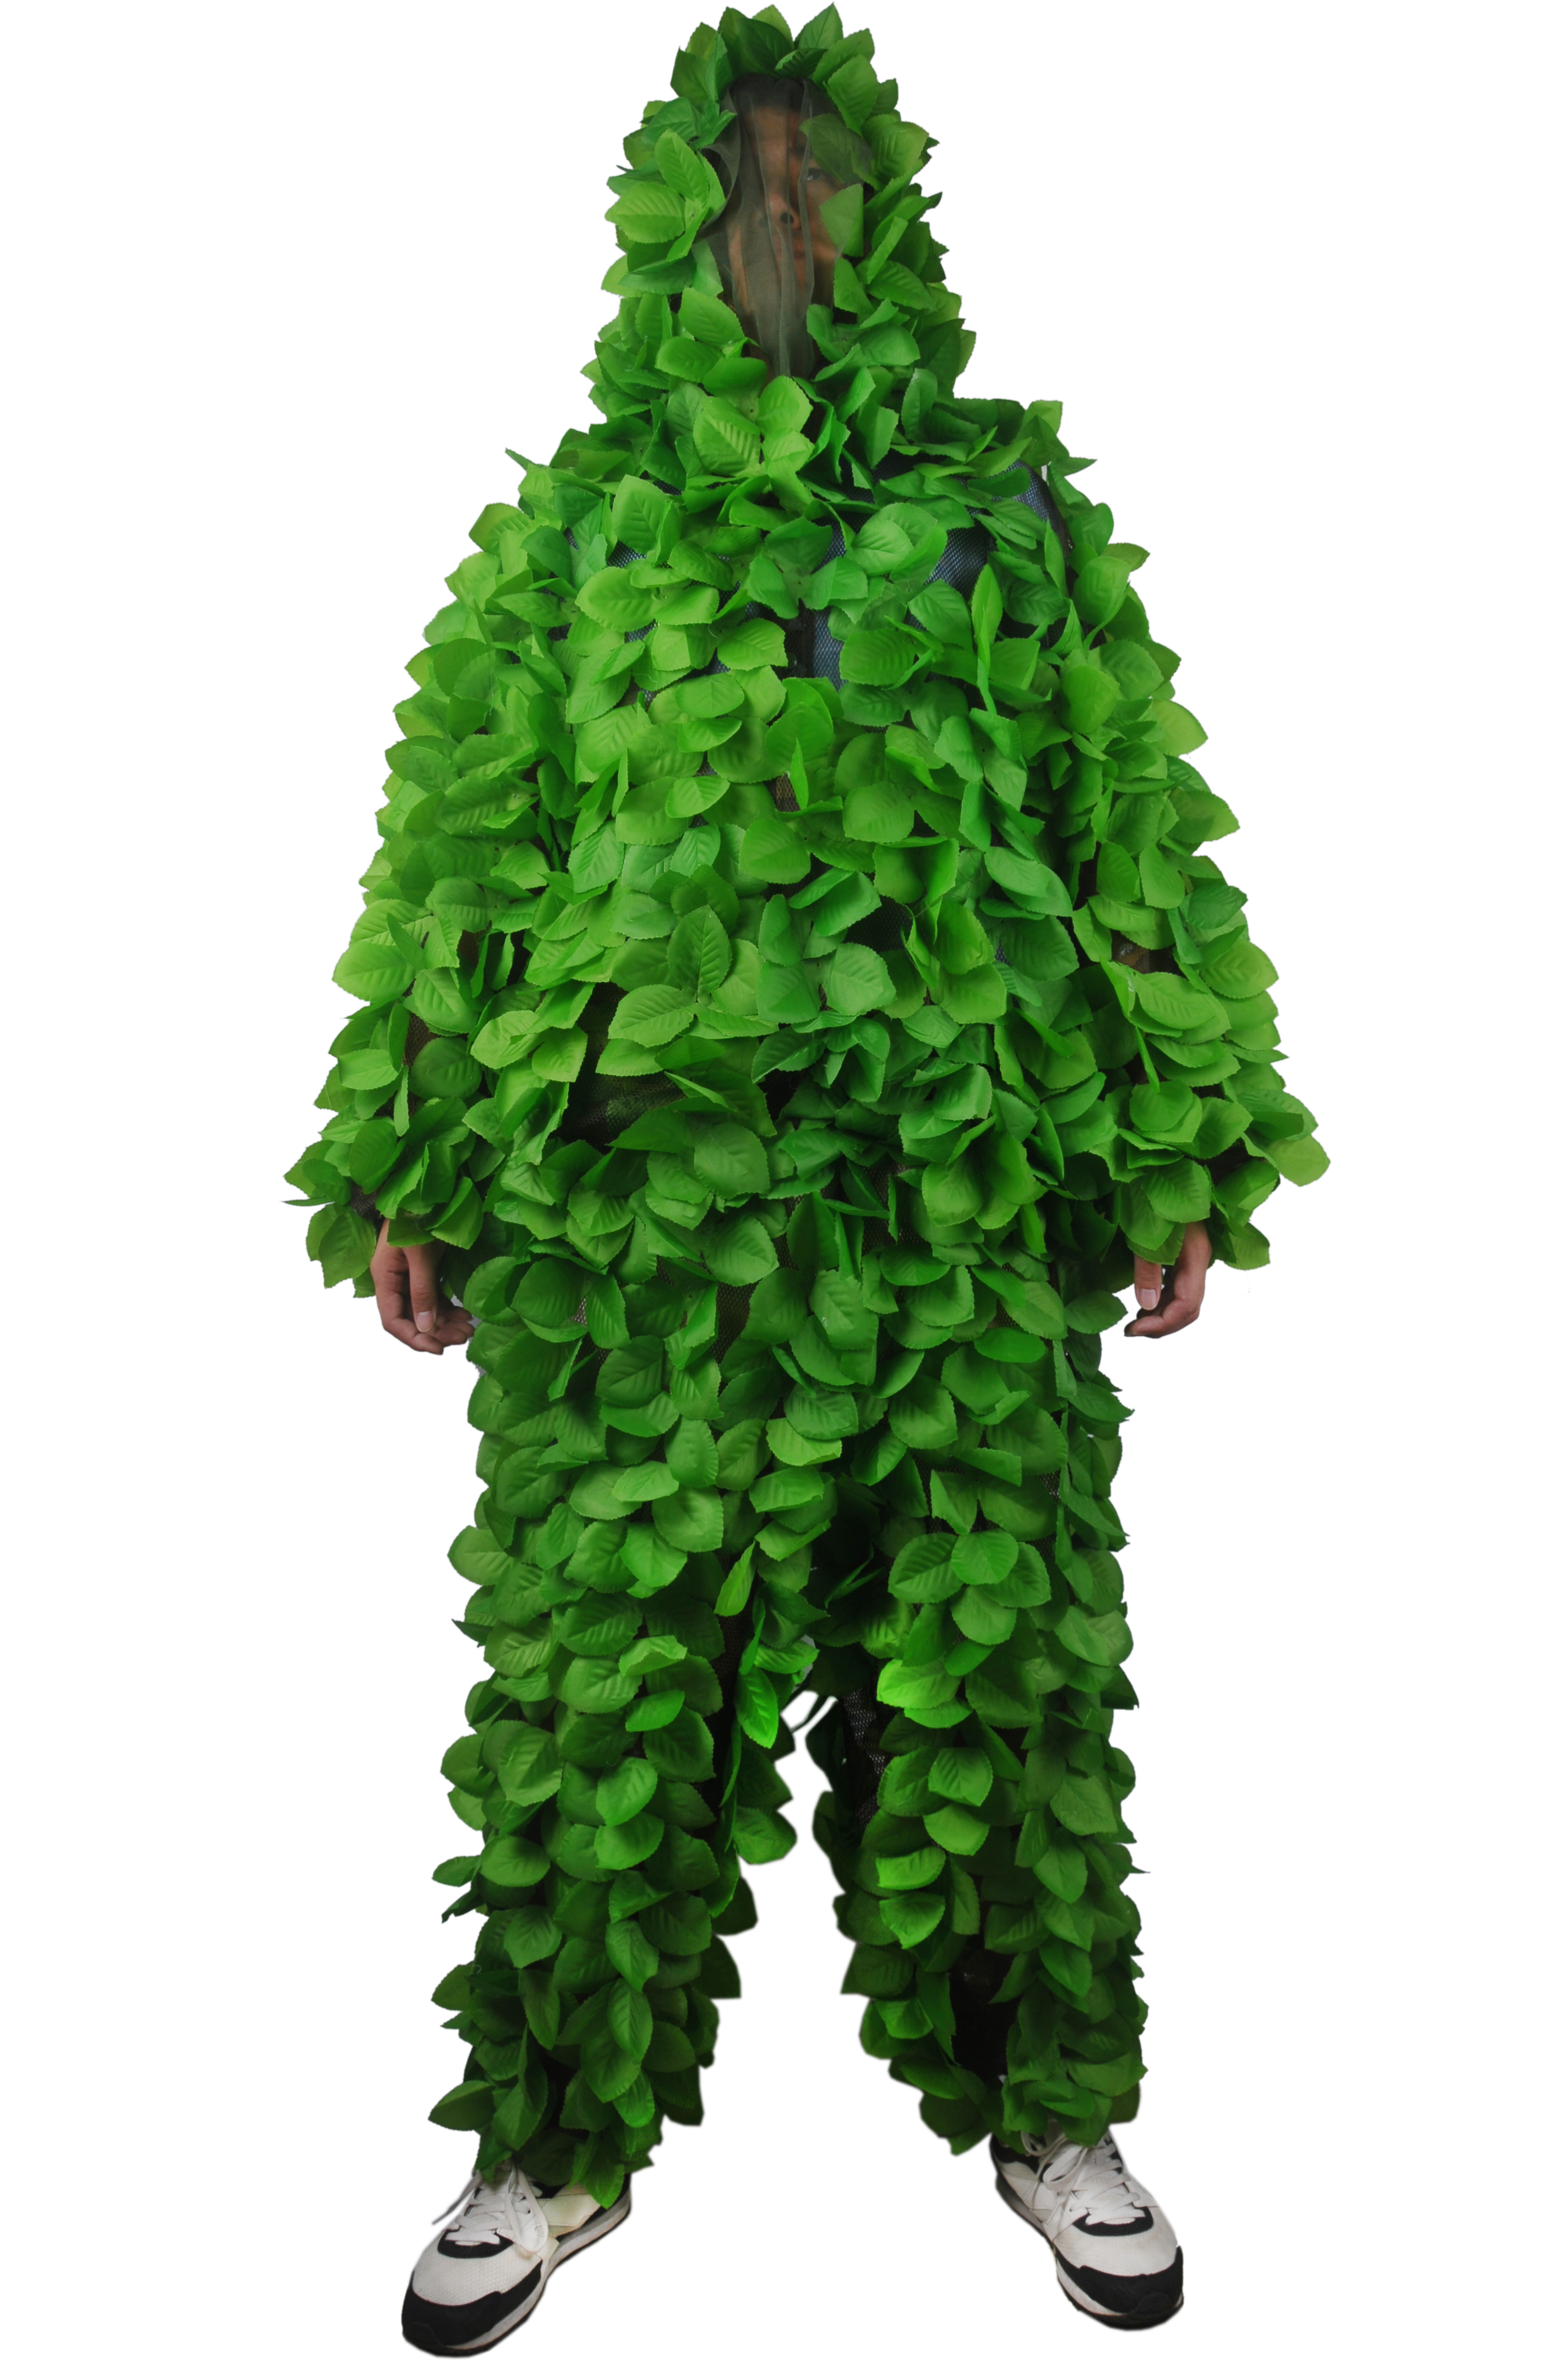 VILEAD Green Leaves Camouflage Suit Hunting Ghillie Suit Woodland Camouflage Hunting Clothes Camo Sniper Army Airsoft Uniform hunting woodland 3d camouflage ghillie suit jungle storage bag for sniper tactical army clothes birdwatching kit